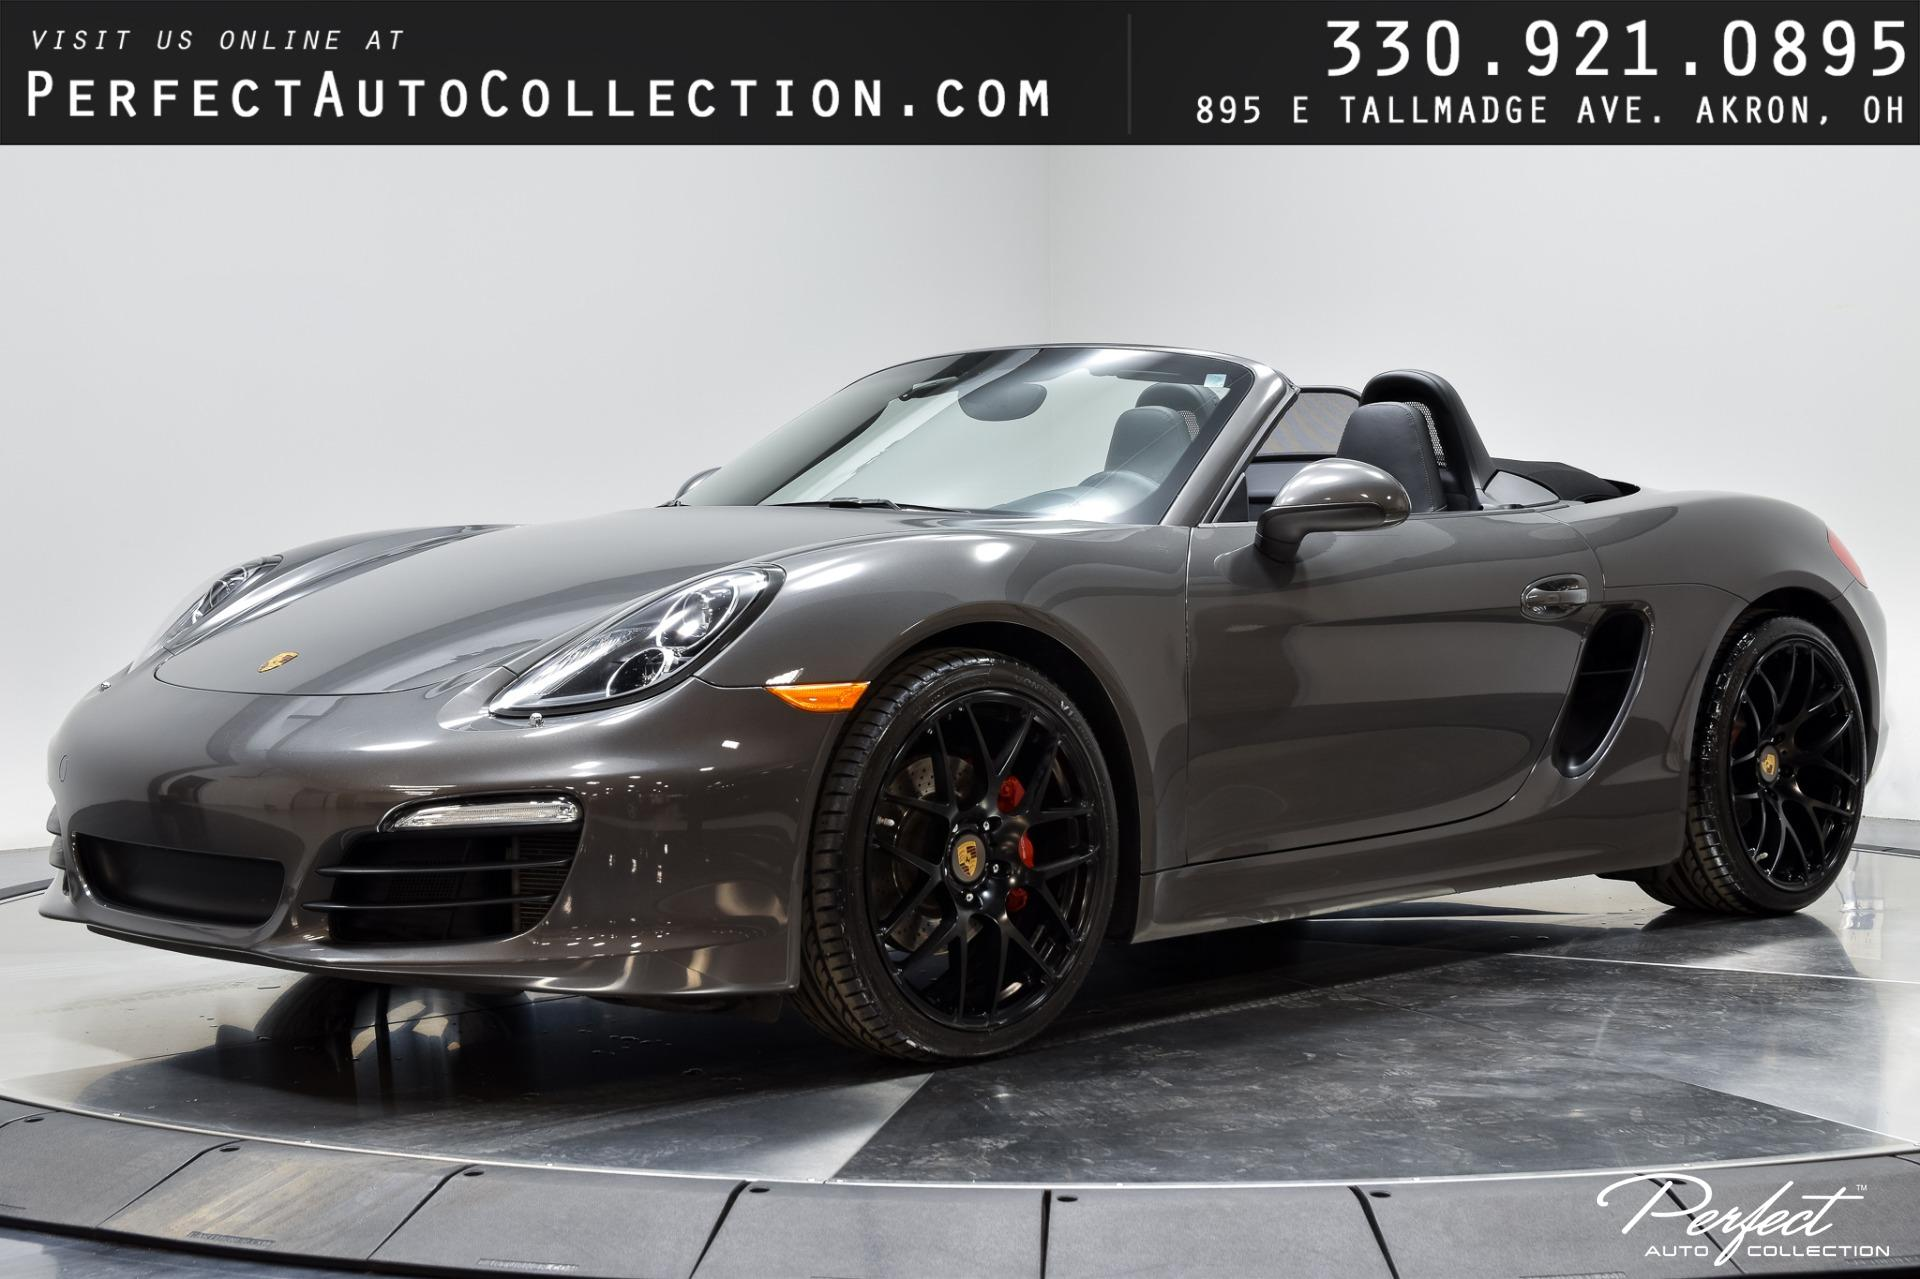 Used 2013 Porsche Boxster S for sale Sold at Perfect Auto Collection in Akron OH 44310 1